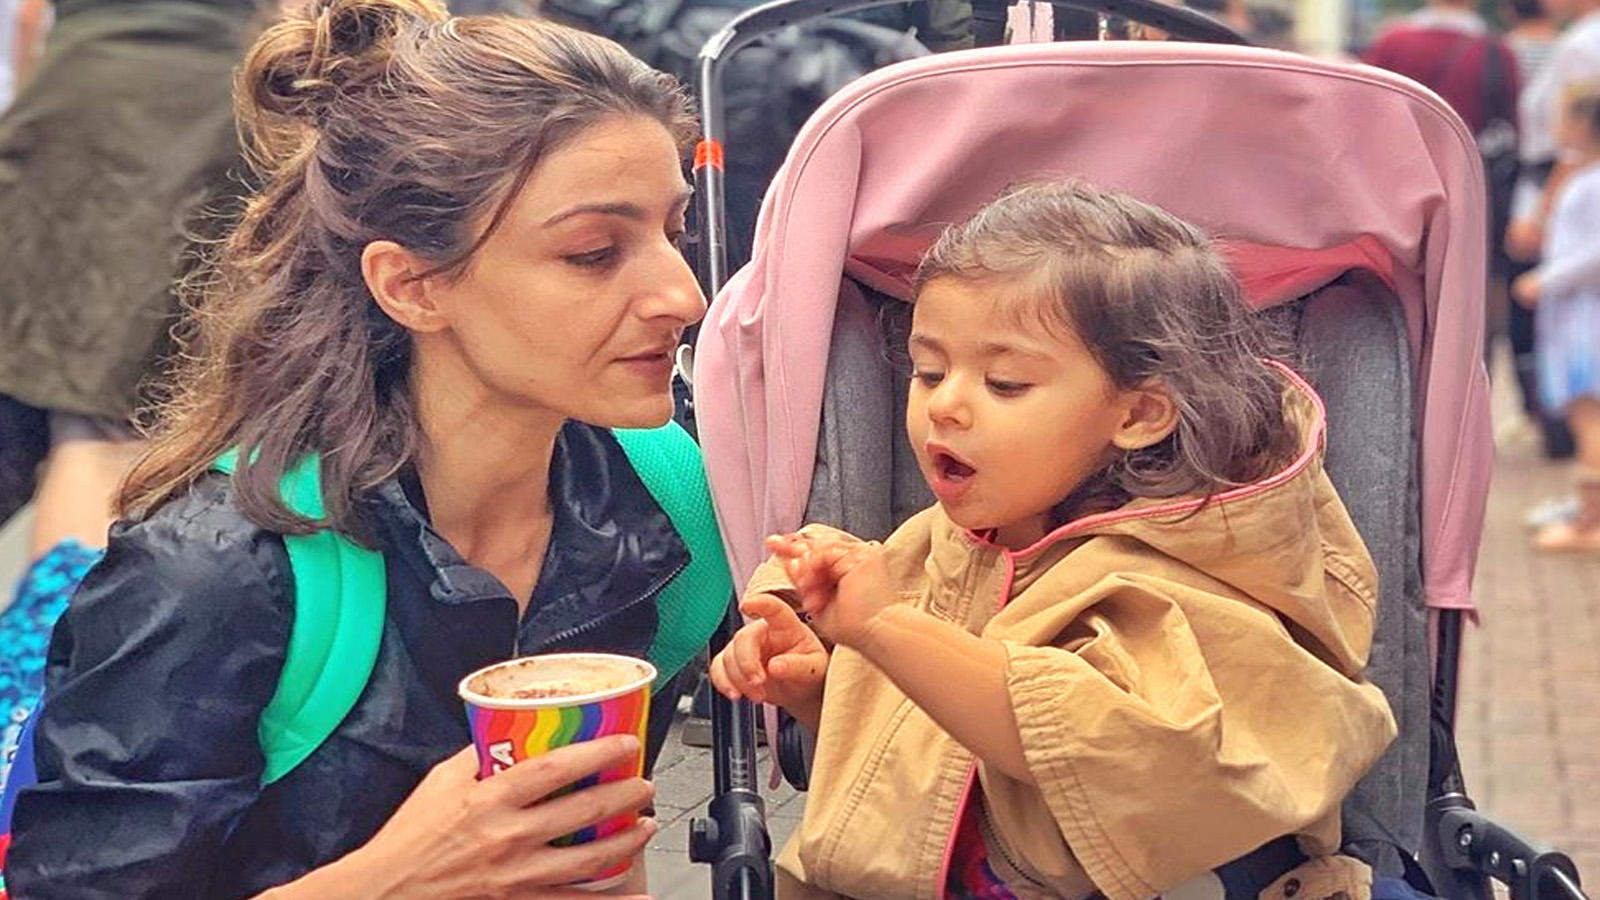 Soha Ali Khan gets trolled for latest picture with daughter Inaaya Naumi Kemmu